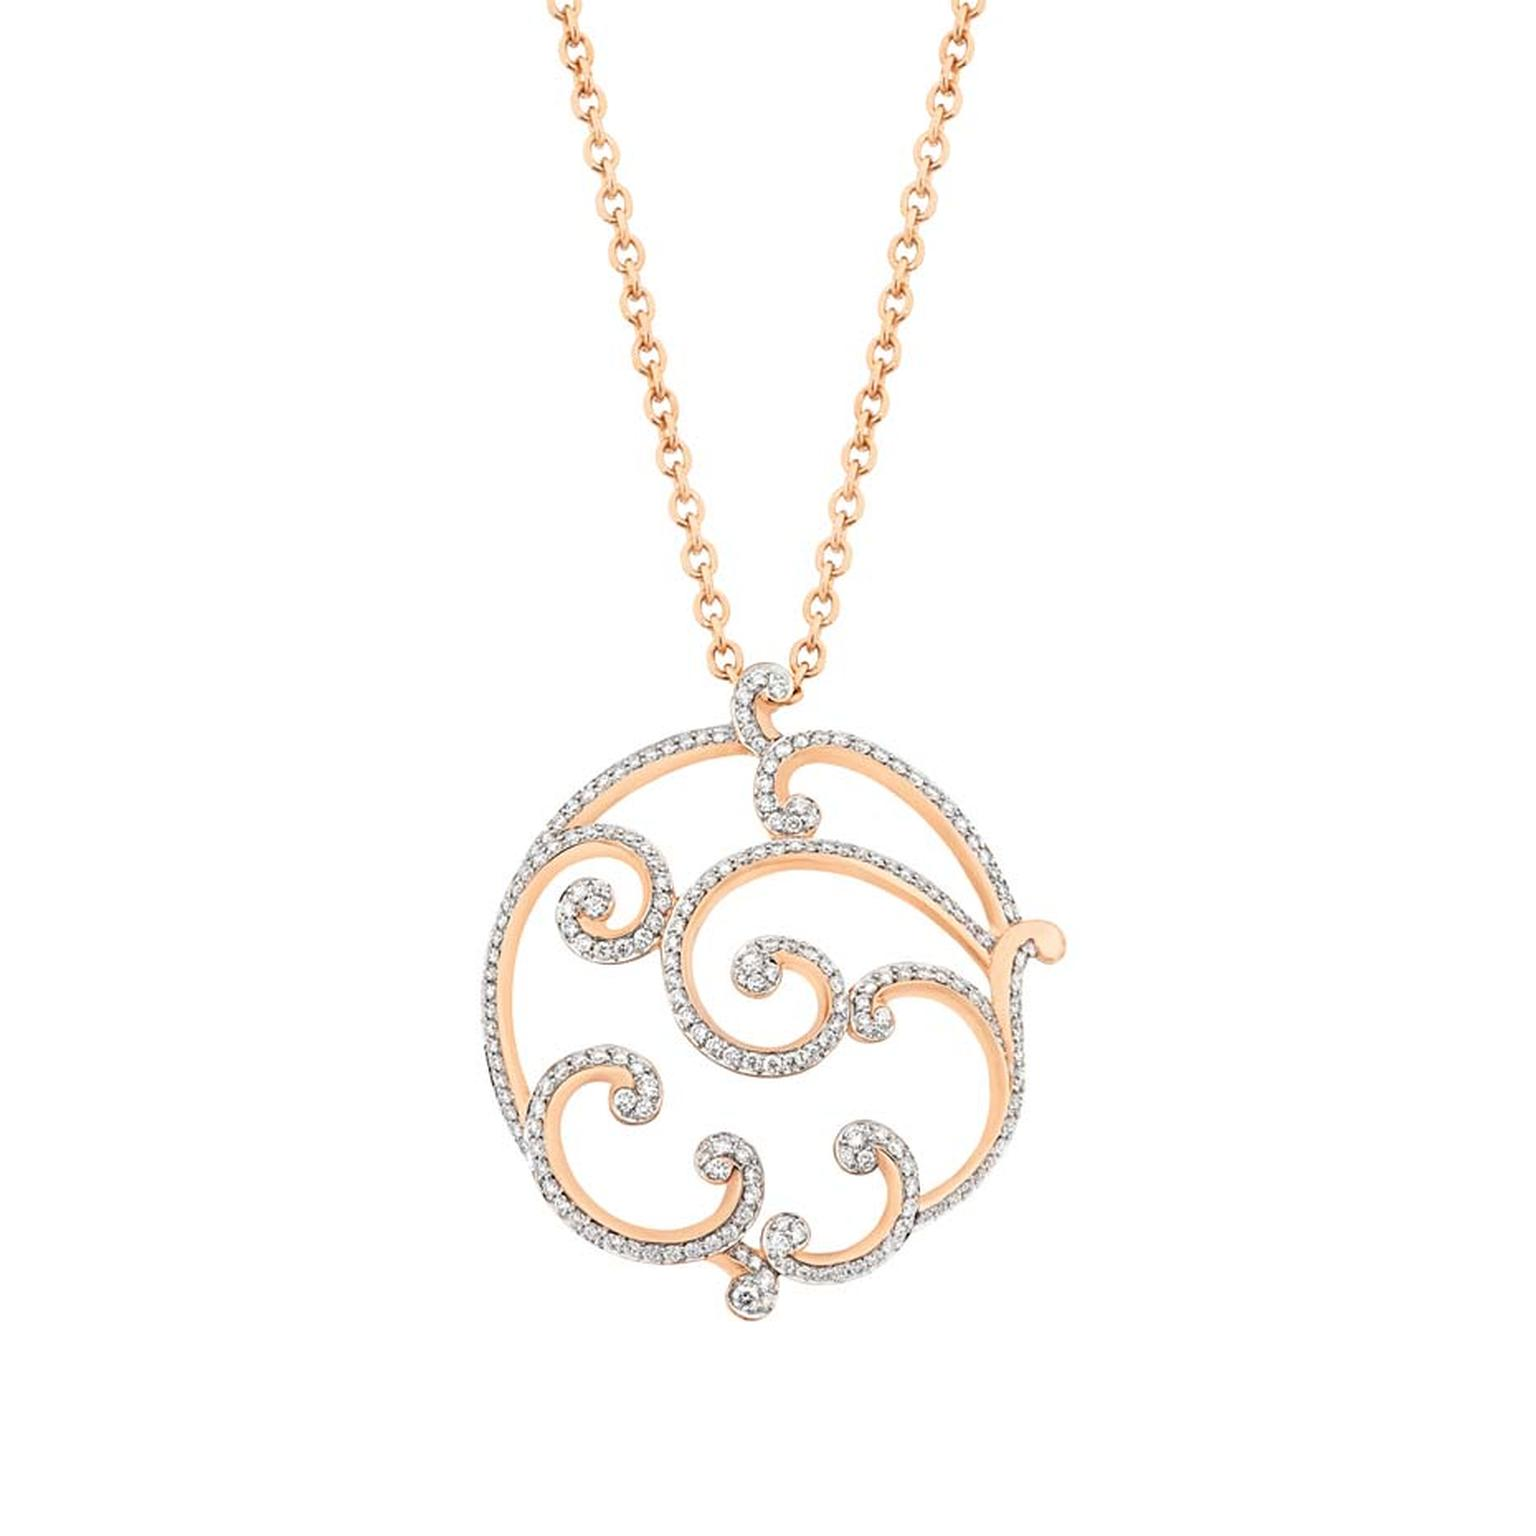 For everyday wear, the swirling curlicue scroll motif found in 18th century ornaments and furniture is interpreted in precious metals and colored gemstones in the Rococo collection. Airy and light open-work gold shapes are highlighted with diamonds or col